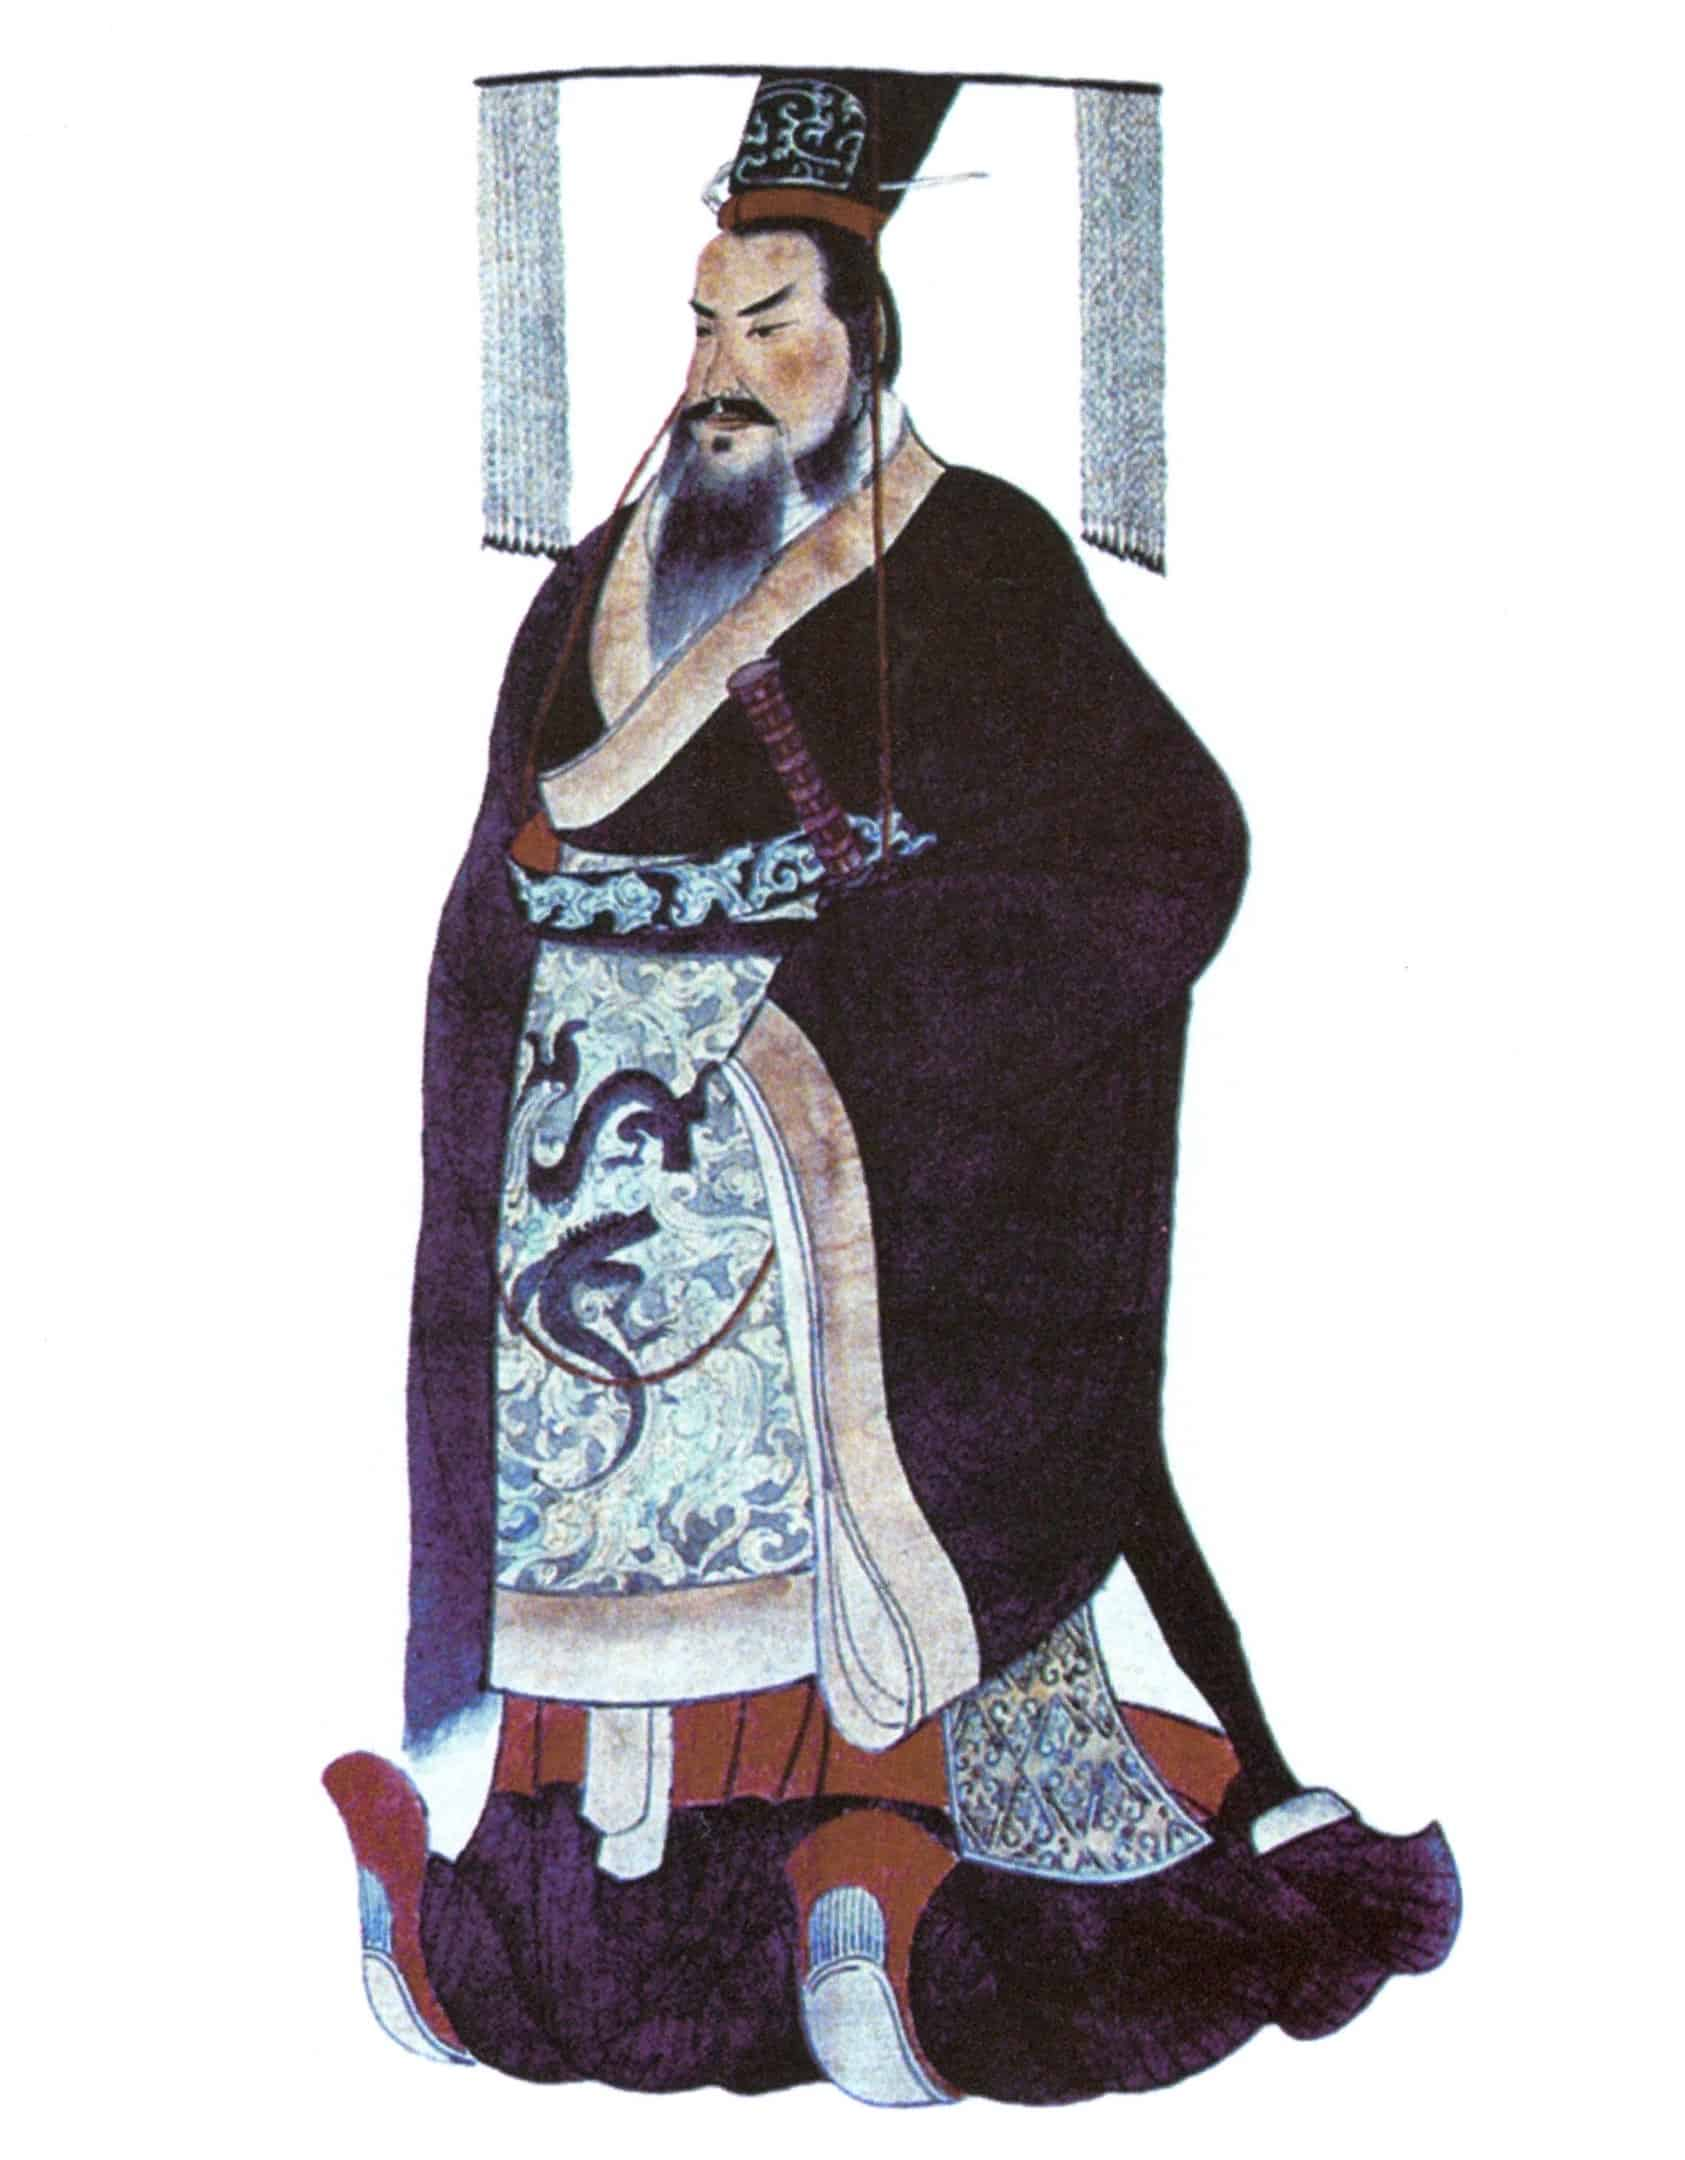 Qin Shi Huang, First Emperor of China, music facts